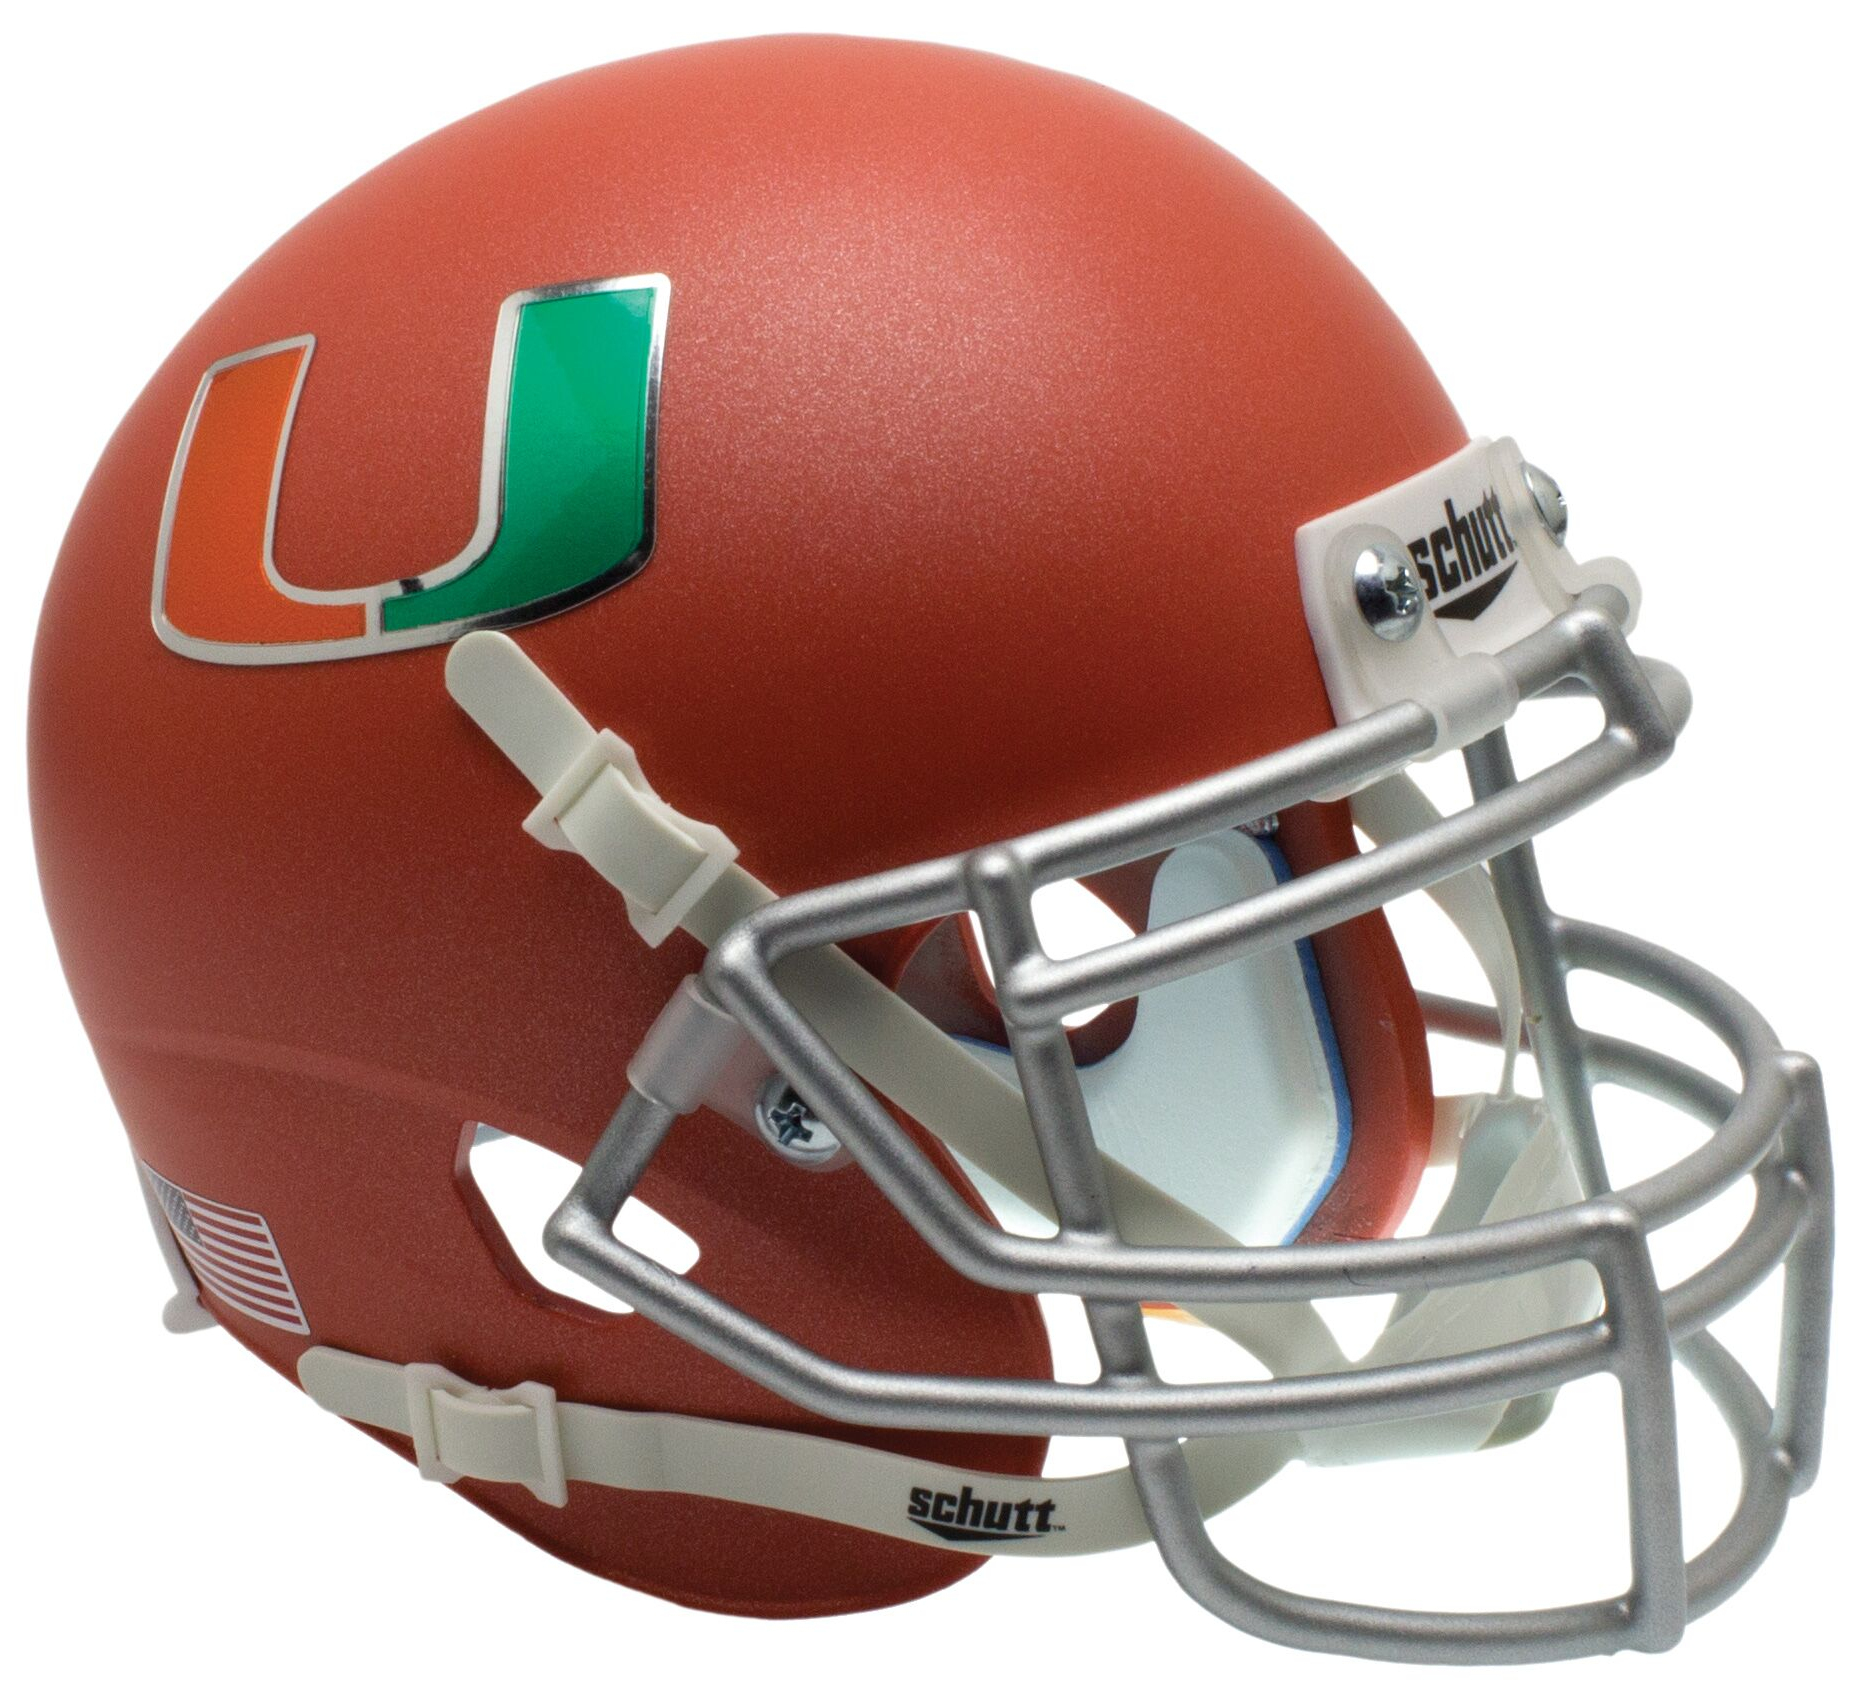 Miami Hurricanes Authentic College XP Football Helmet Schutt <B>Orange</B>